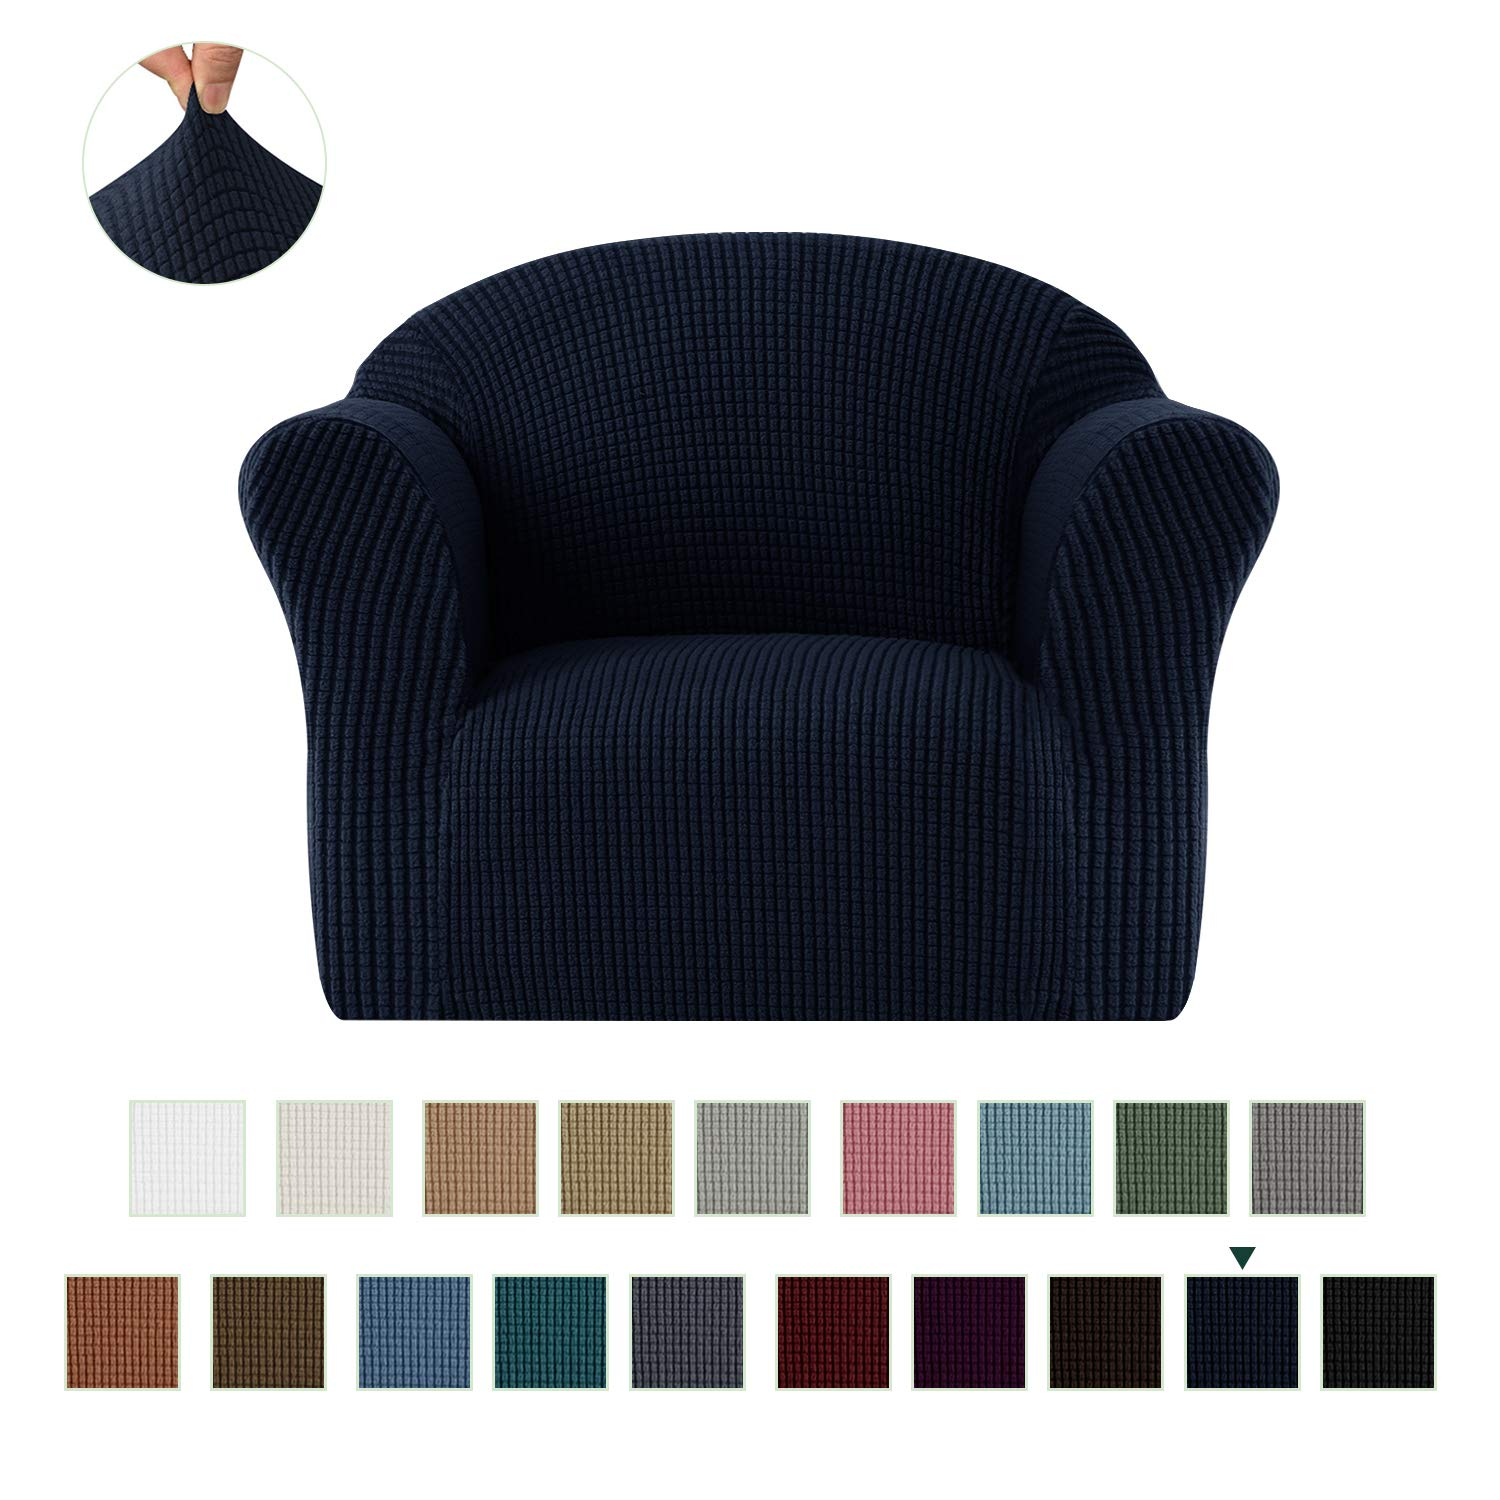 CHUN YI Jacquard HighStretch Kids Sofa Cover Child's Chair Cover Mini Size Sofa Slipcovers, 1 Seat Soft Armchair Couch Cover Settee Coat for Children/Toddlers/Baby (Dark Blue)